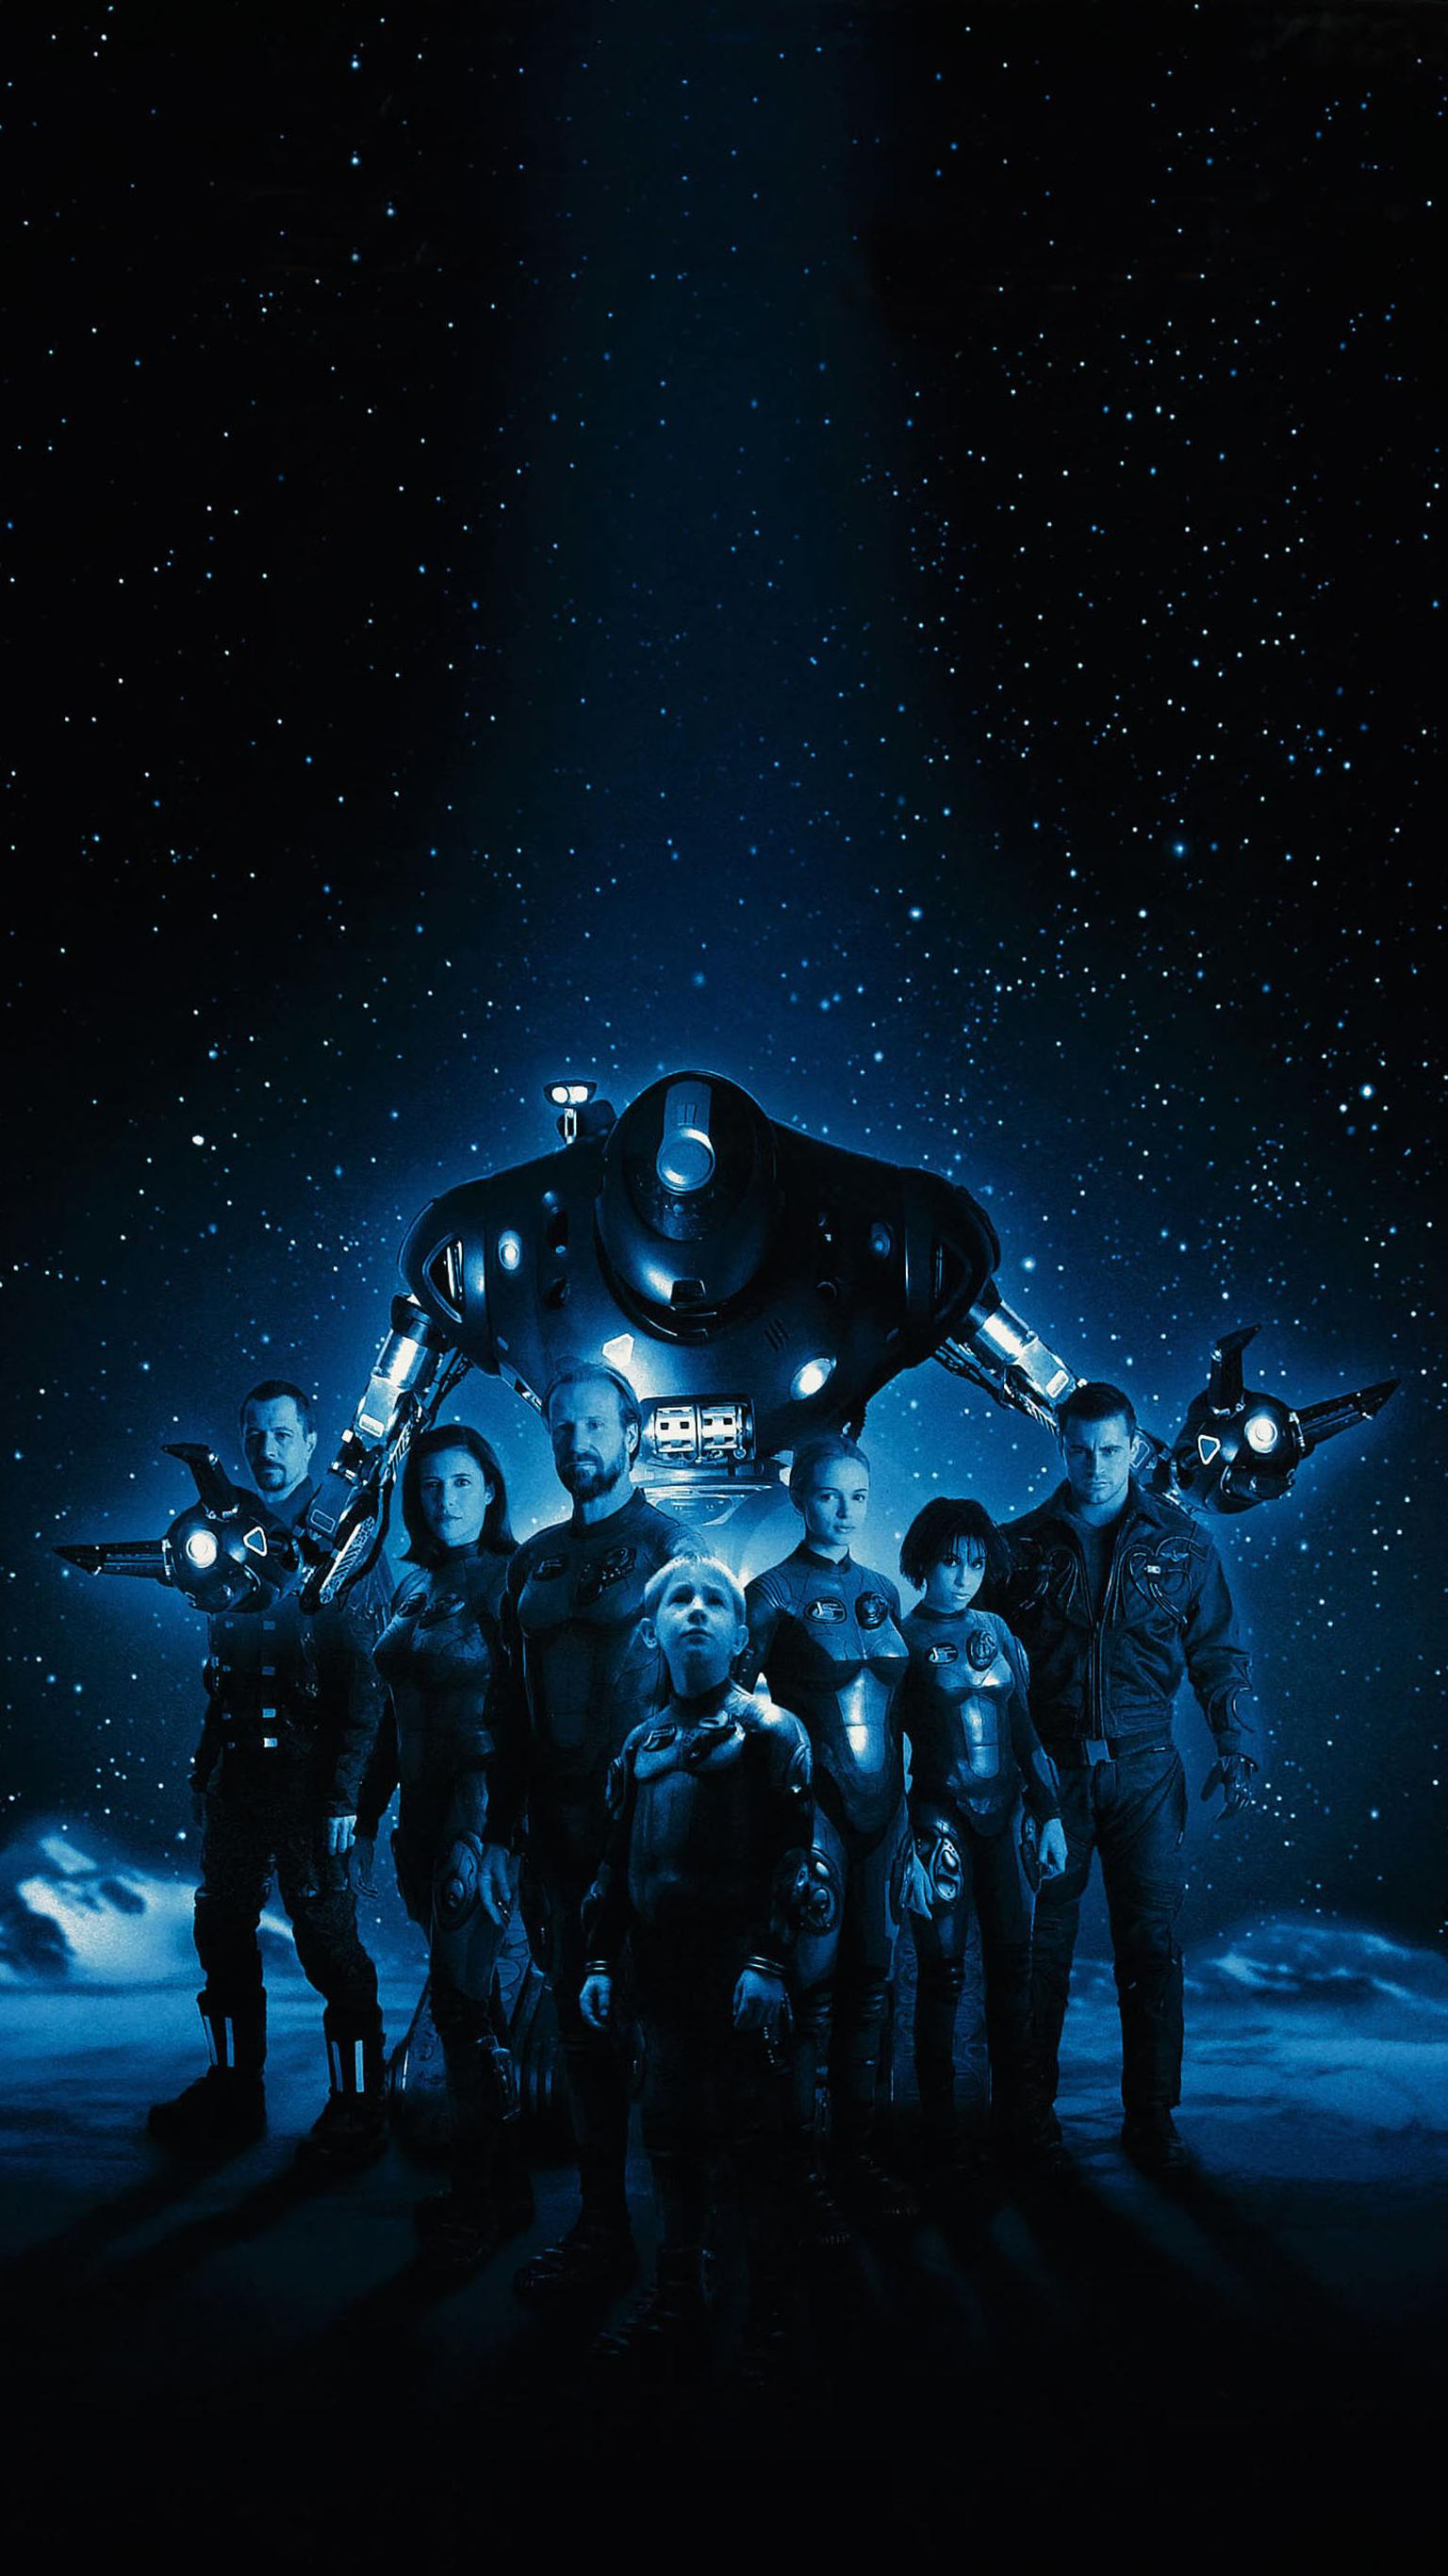 Lost In Space Wallpapers Top Free Lost In Space Backgrounds Wallpaperaccess